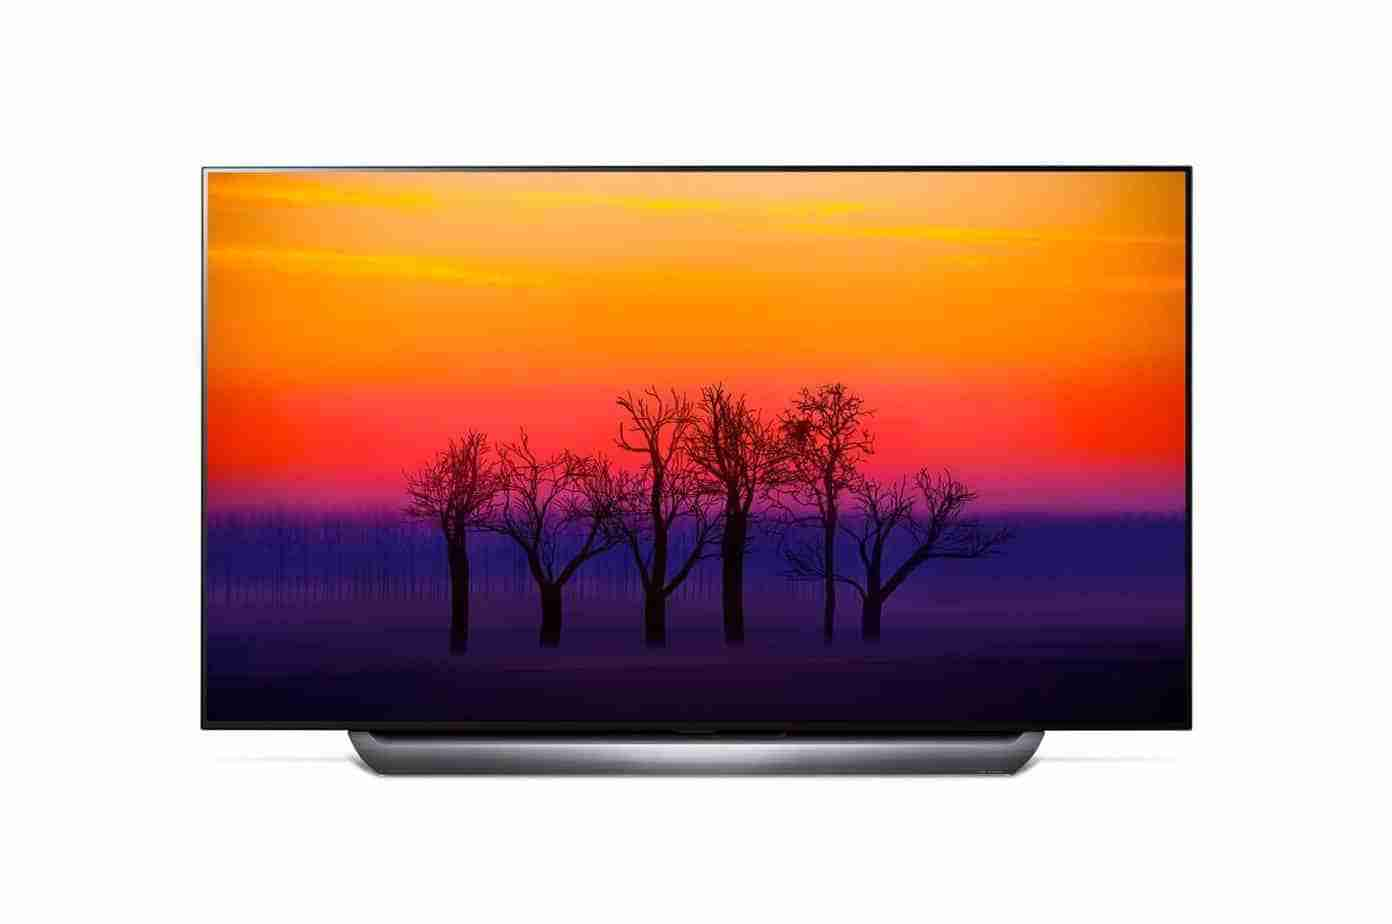 Do OLED TVs Suffer from Screen Burn-In or Permanent Image Retention